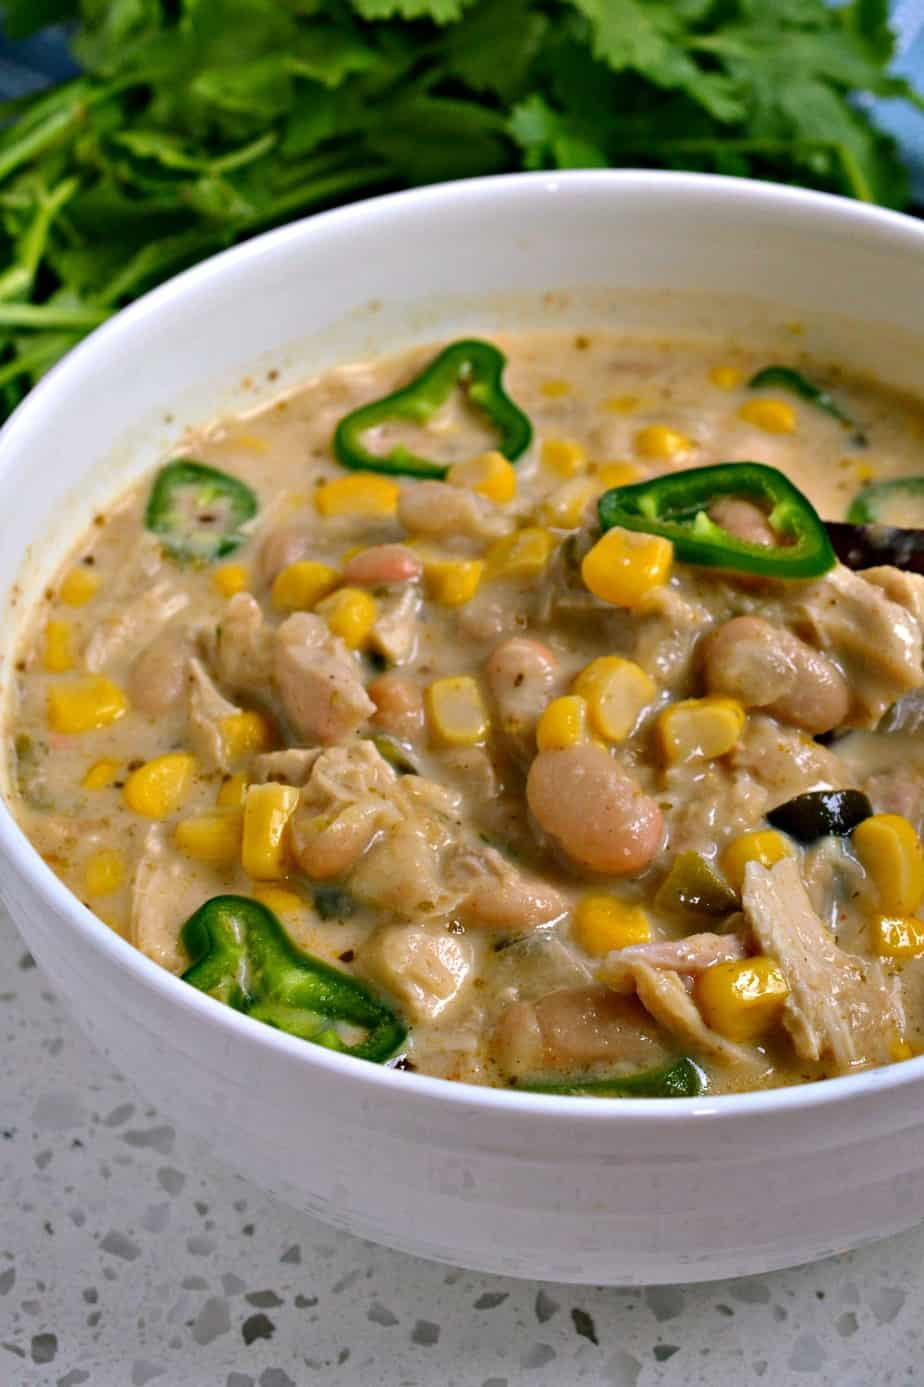 This creamy White Chicken Chili with fresh peppers is a nice change of pace from the traditional red tomato based chili.